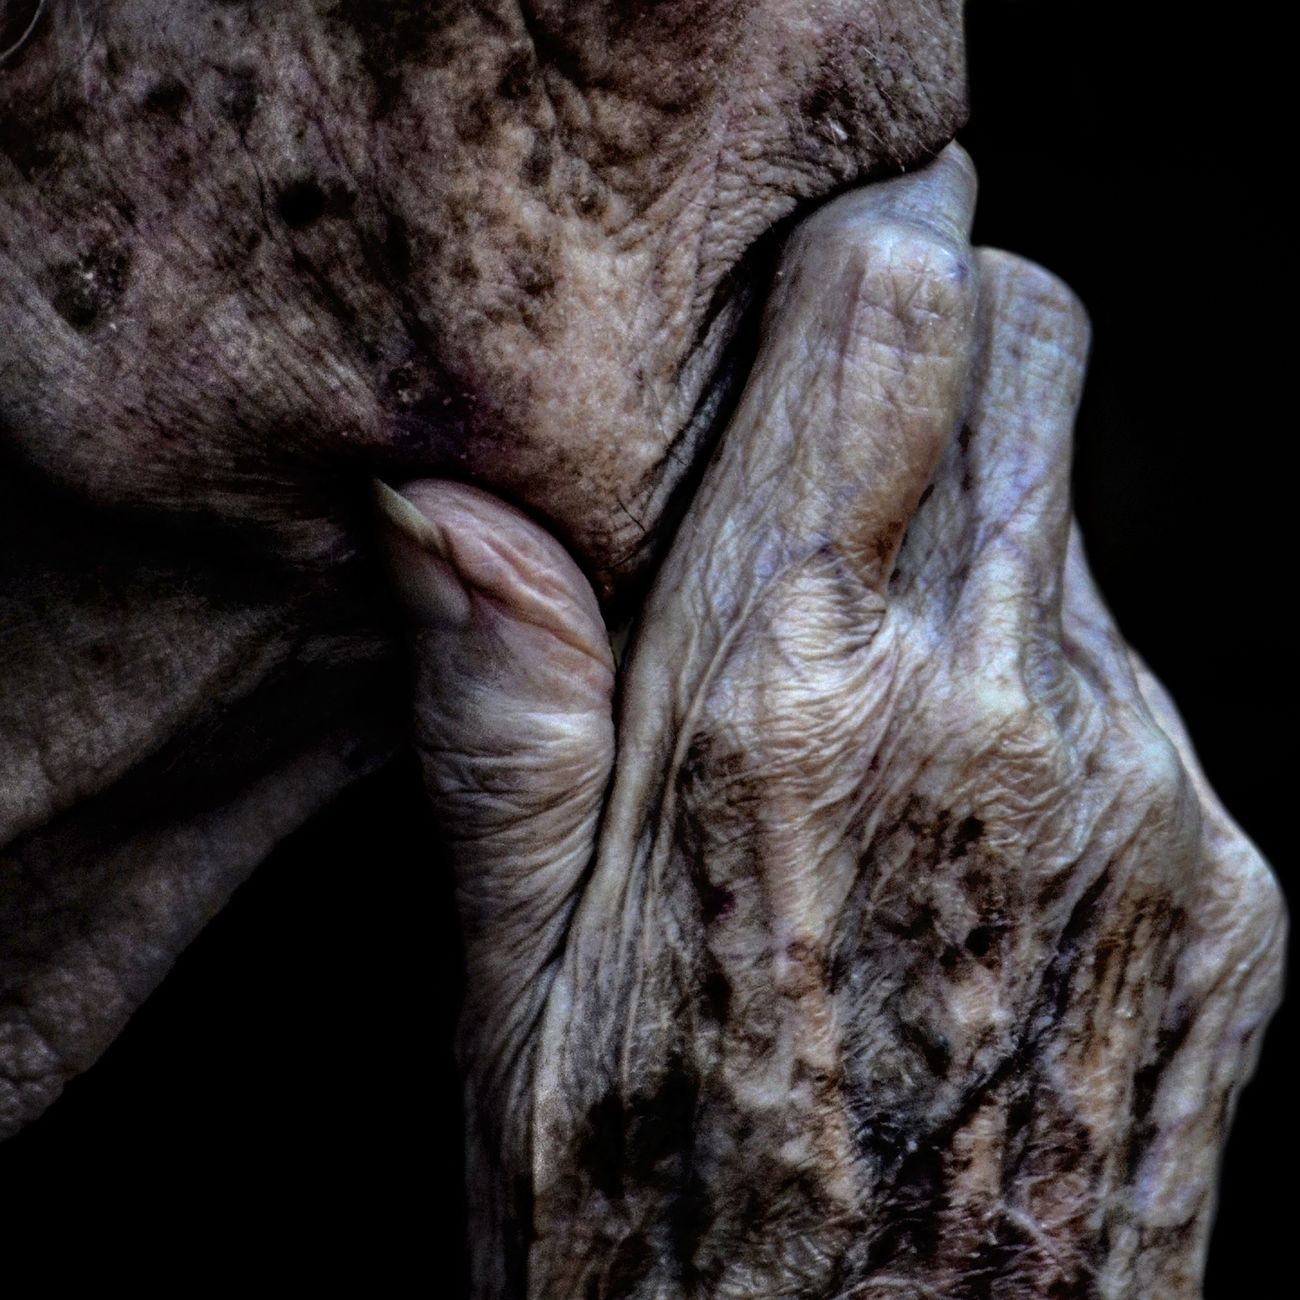 Anonymous portrait... Human Body Part Human Hand Human Skin One Person Exhibition Exhibit Art Photographic Photograph Photographer Gallery Visitor Watchers Watch See Look Looking Private Public Blurred Blur Out Of Focus Photography Documentary Reportage Street Exhibition Center One Woman Only Contemplation Wrinkled Street Portrait EyeEm Best Shots RePicture Ageing The Human Condition Exhibition Pieces Portrait Beauty Adult Touching Real People Human Representation Streetphotography People Adults Only Human Face Facial Expression